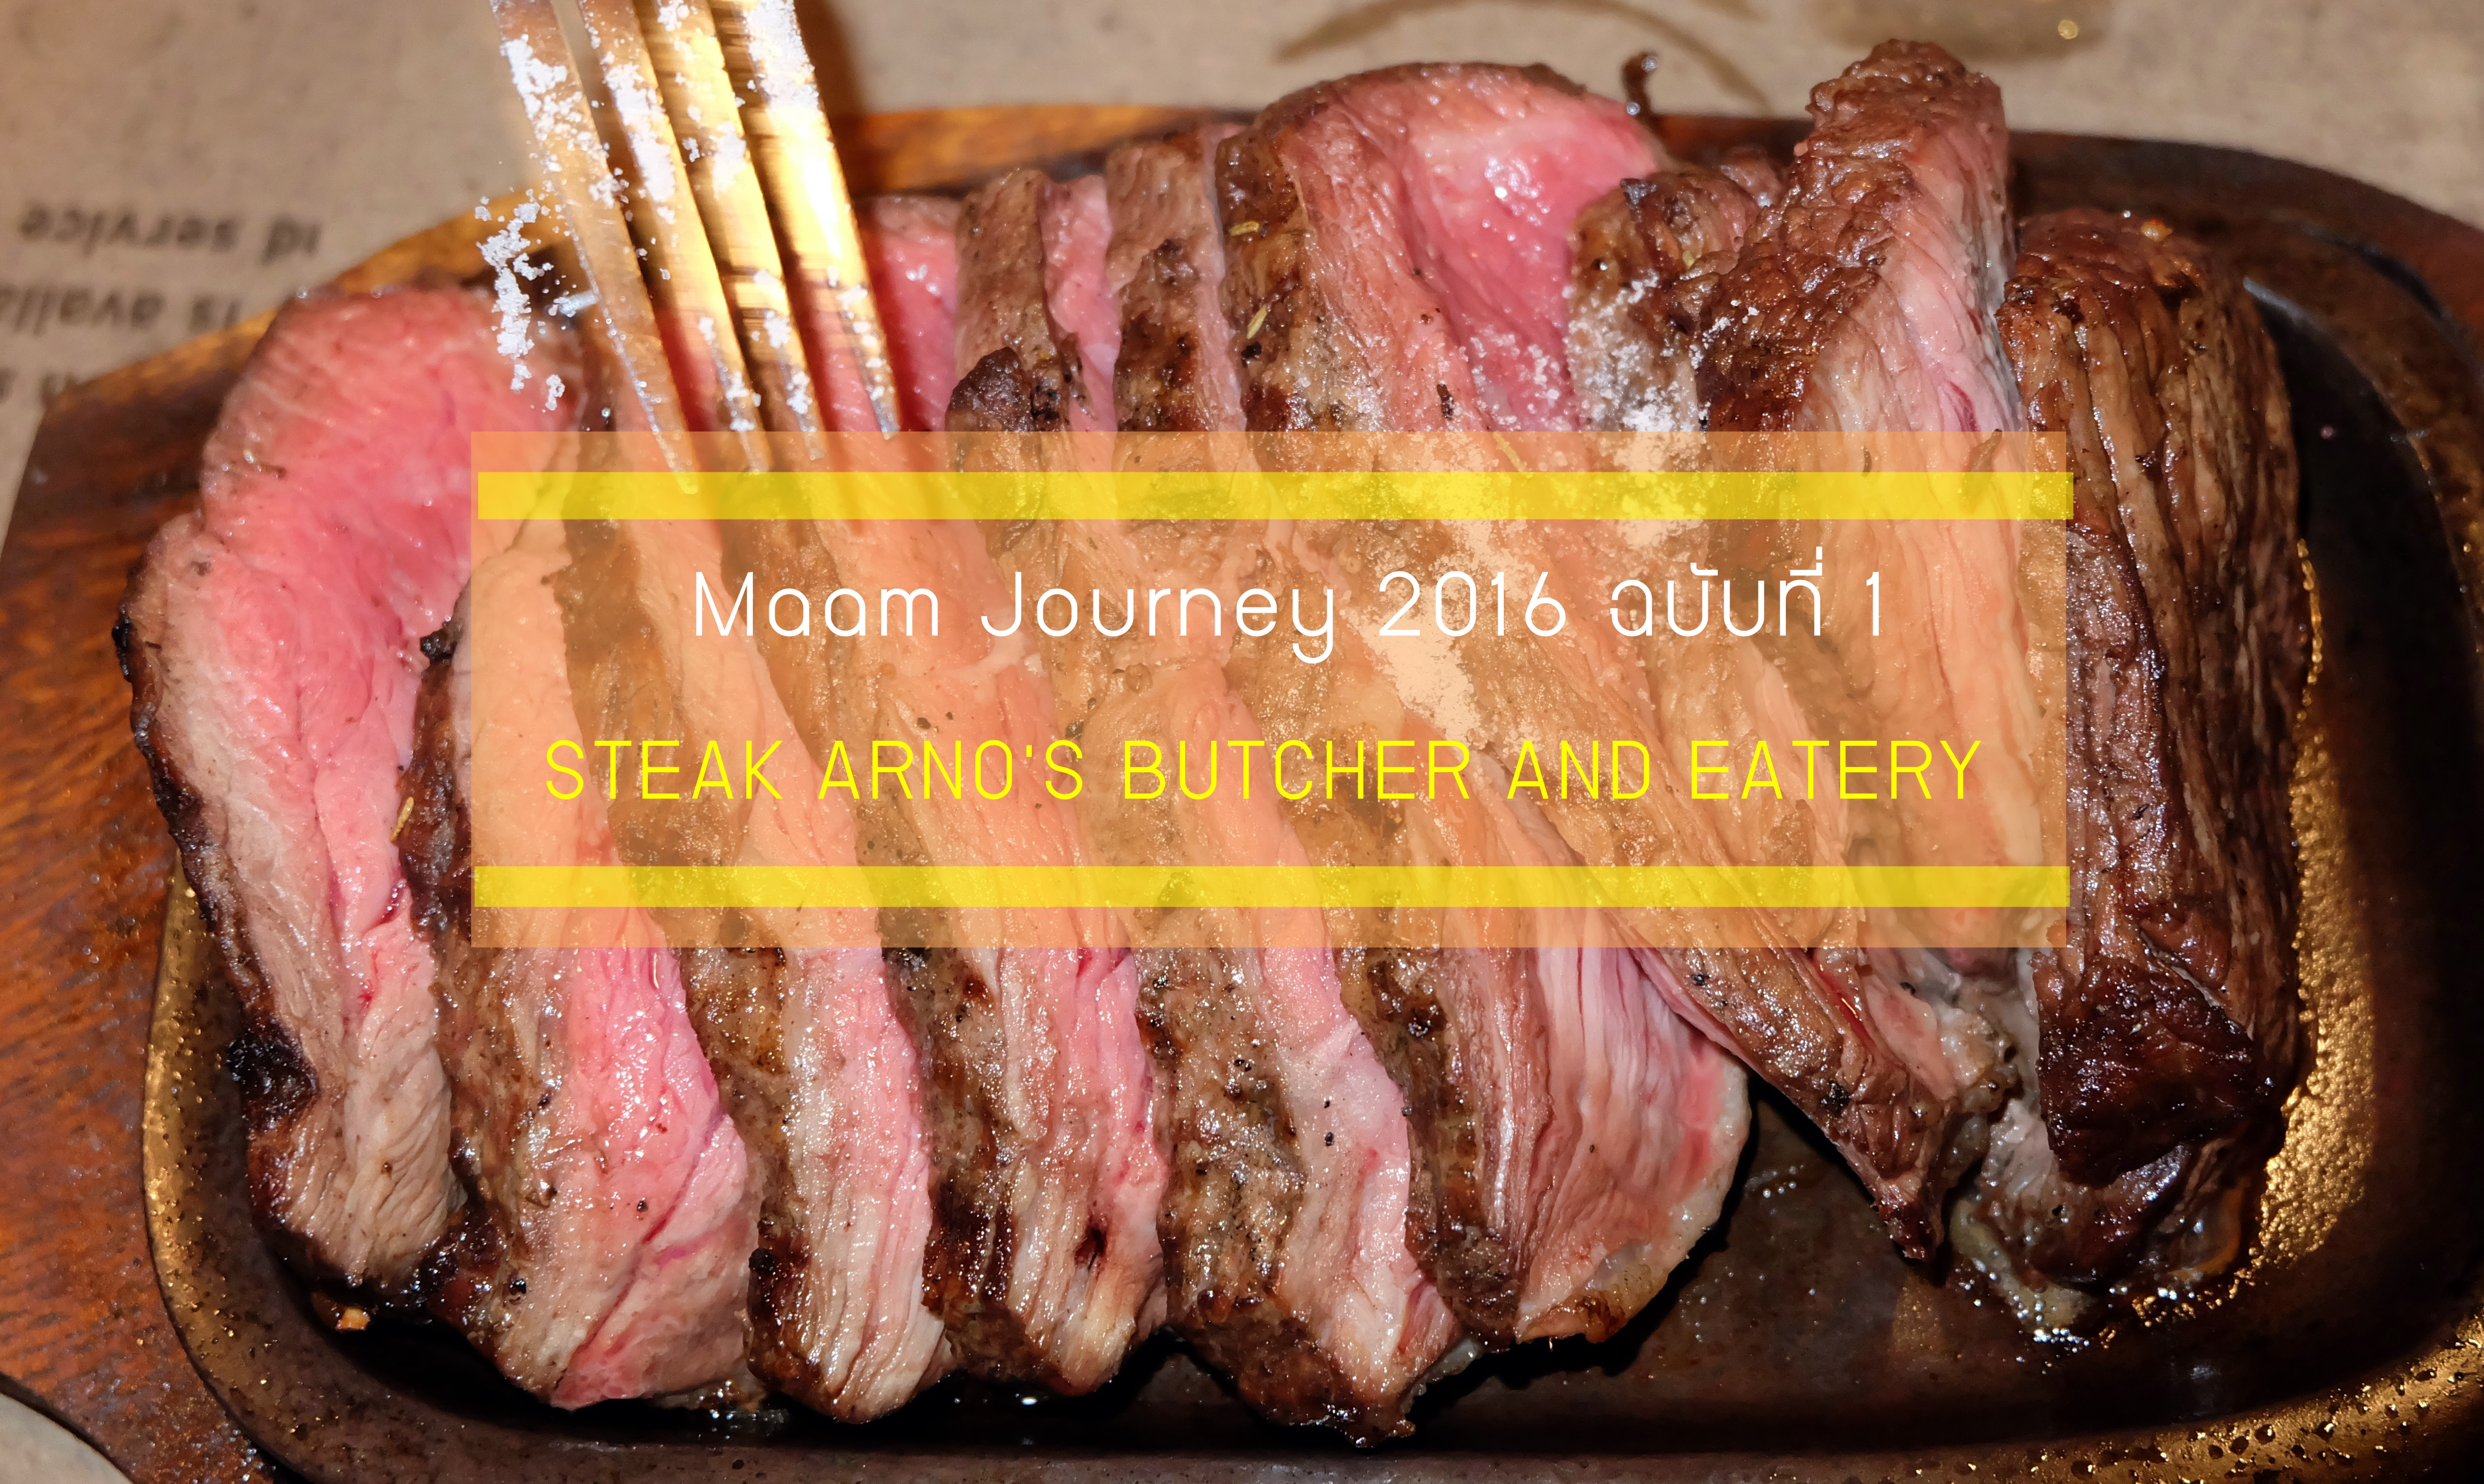 ARNO BUTCHER AND EATERY